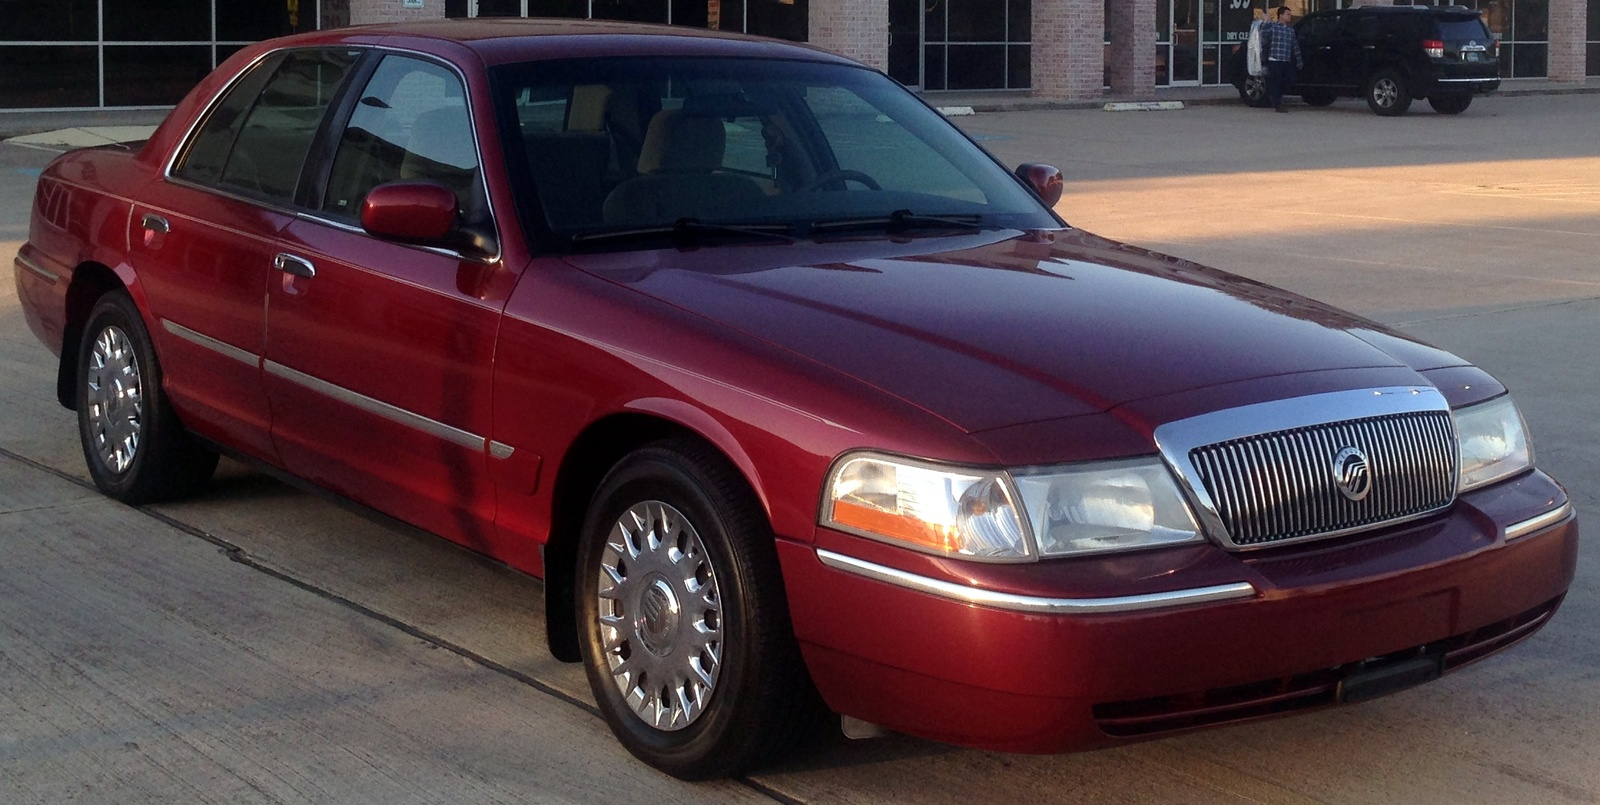 Mercury Marquis Colony Park Station Wagon Flickr Photo Sharing Monarch Fuse Box Location Download